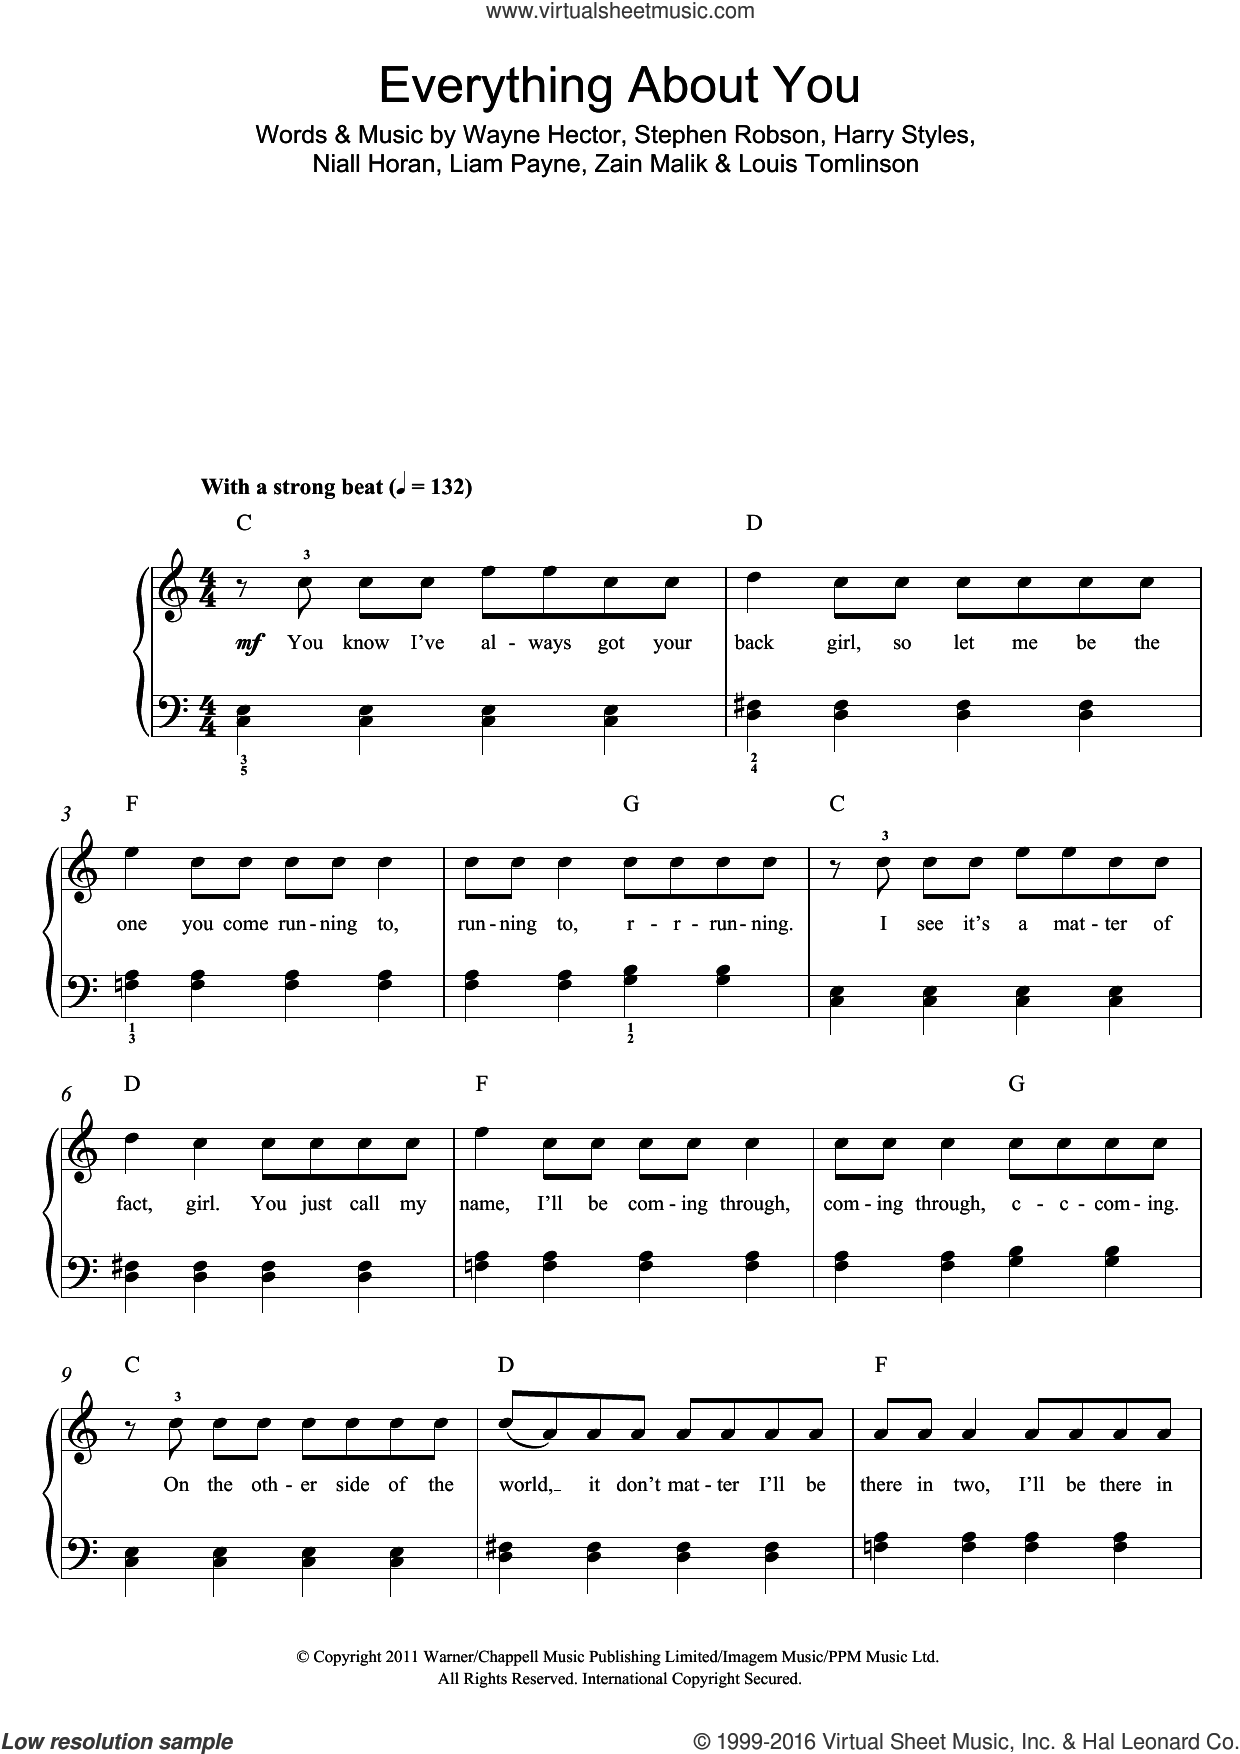 Everything About You sheet music for piano solo (beginners) by One Direction, Harry Styles, Liam Payne, Louis Tomlinson, Niall Horan, Steve Robson, Wayne Hector and Zain Malik, beginner piano (beginners)